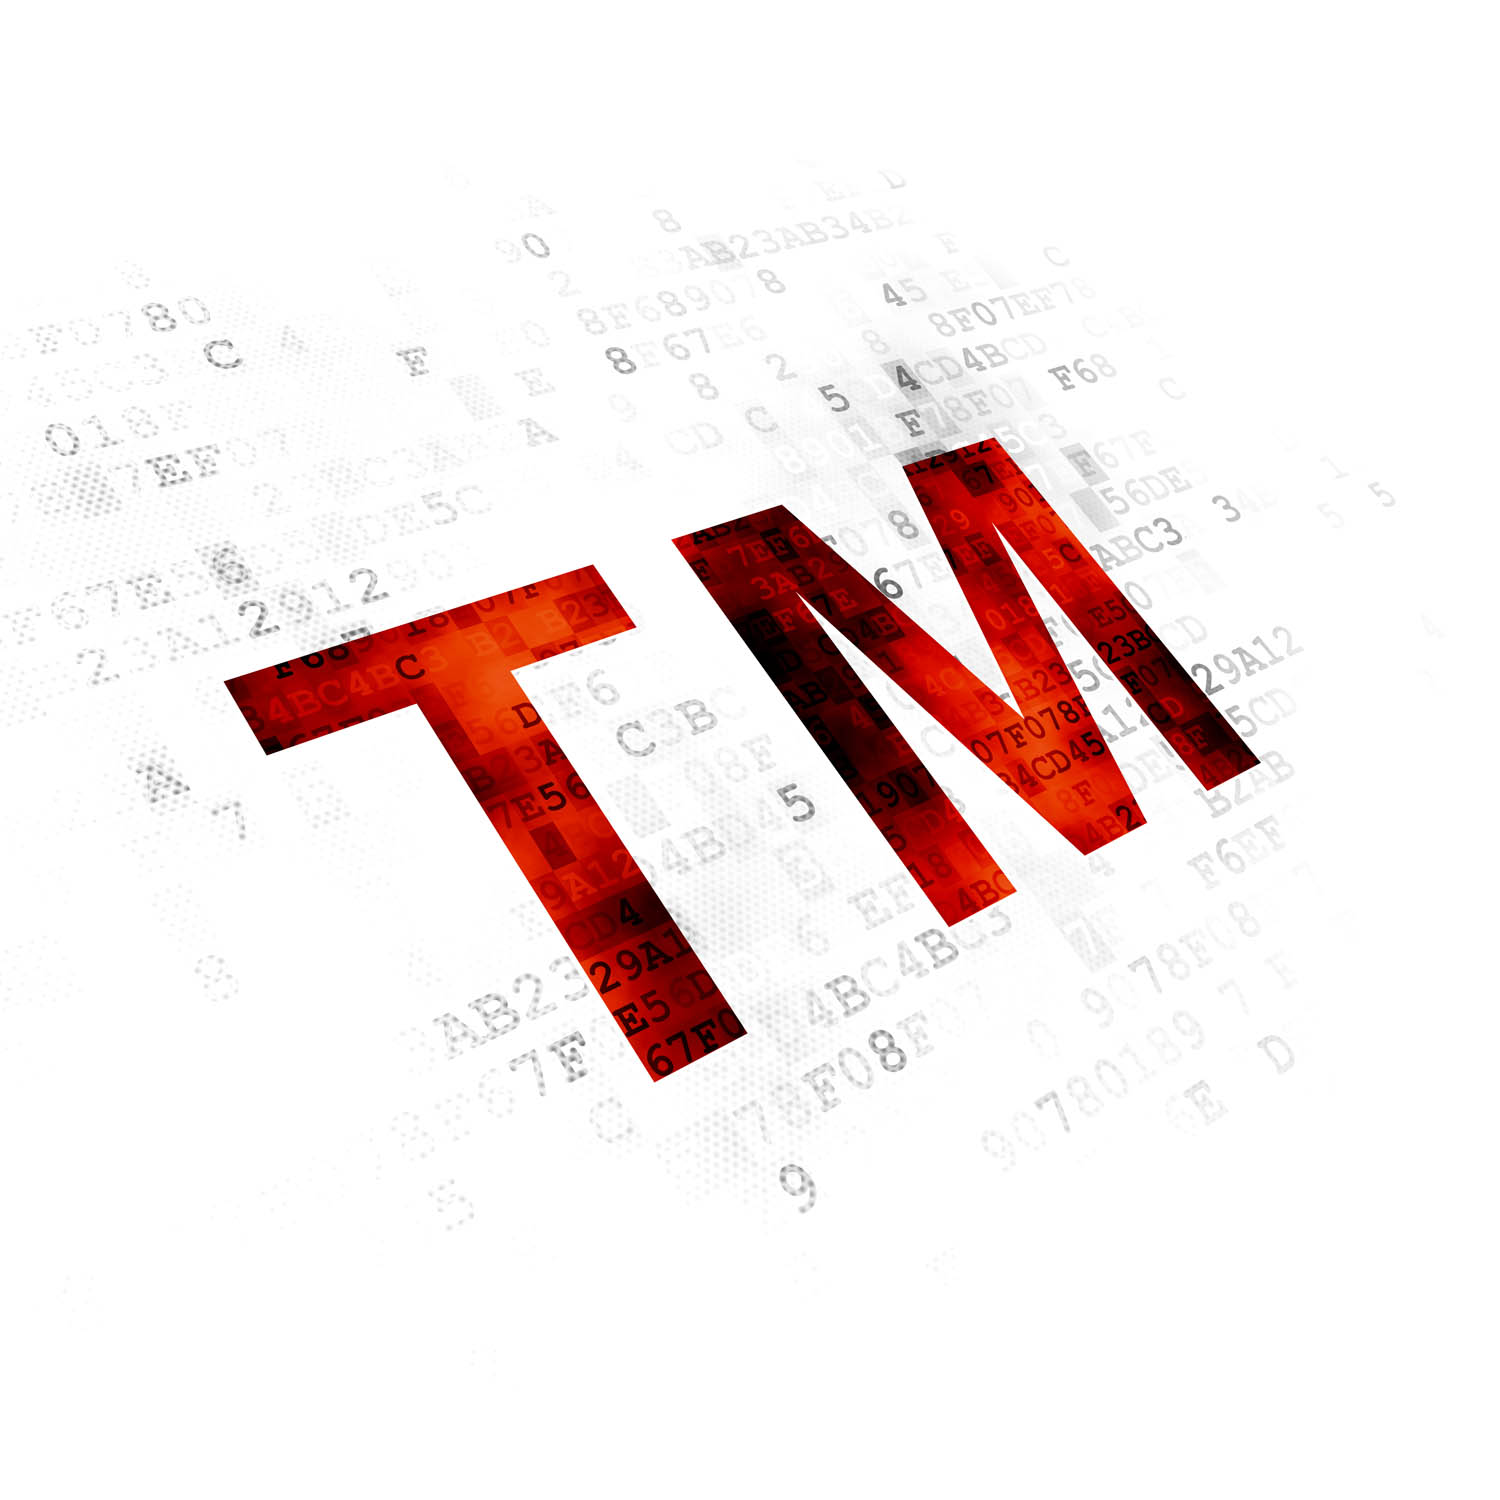 Why You Should Register Your Trademark